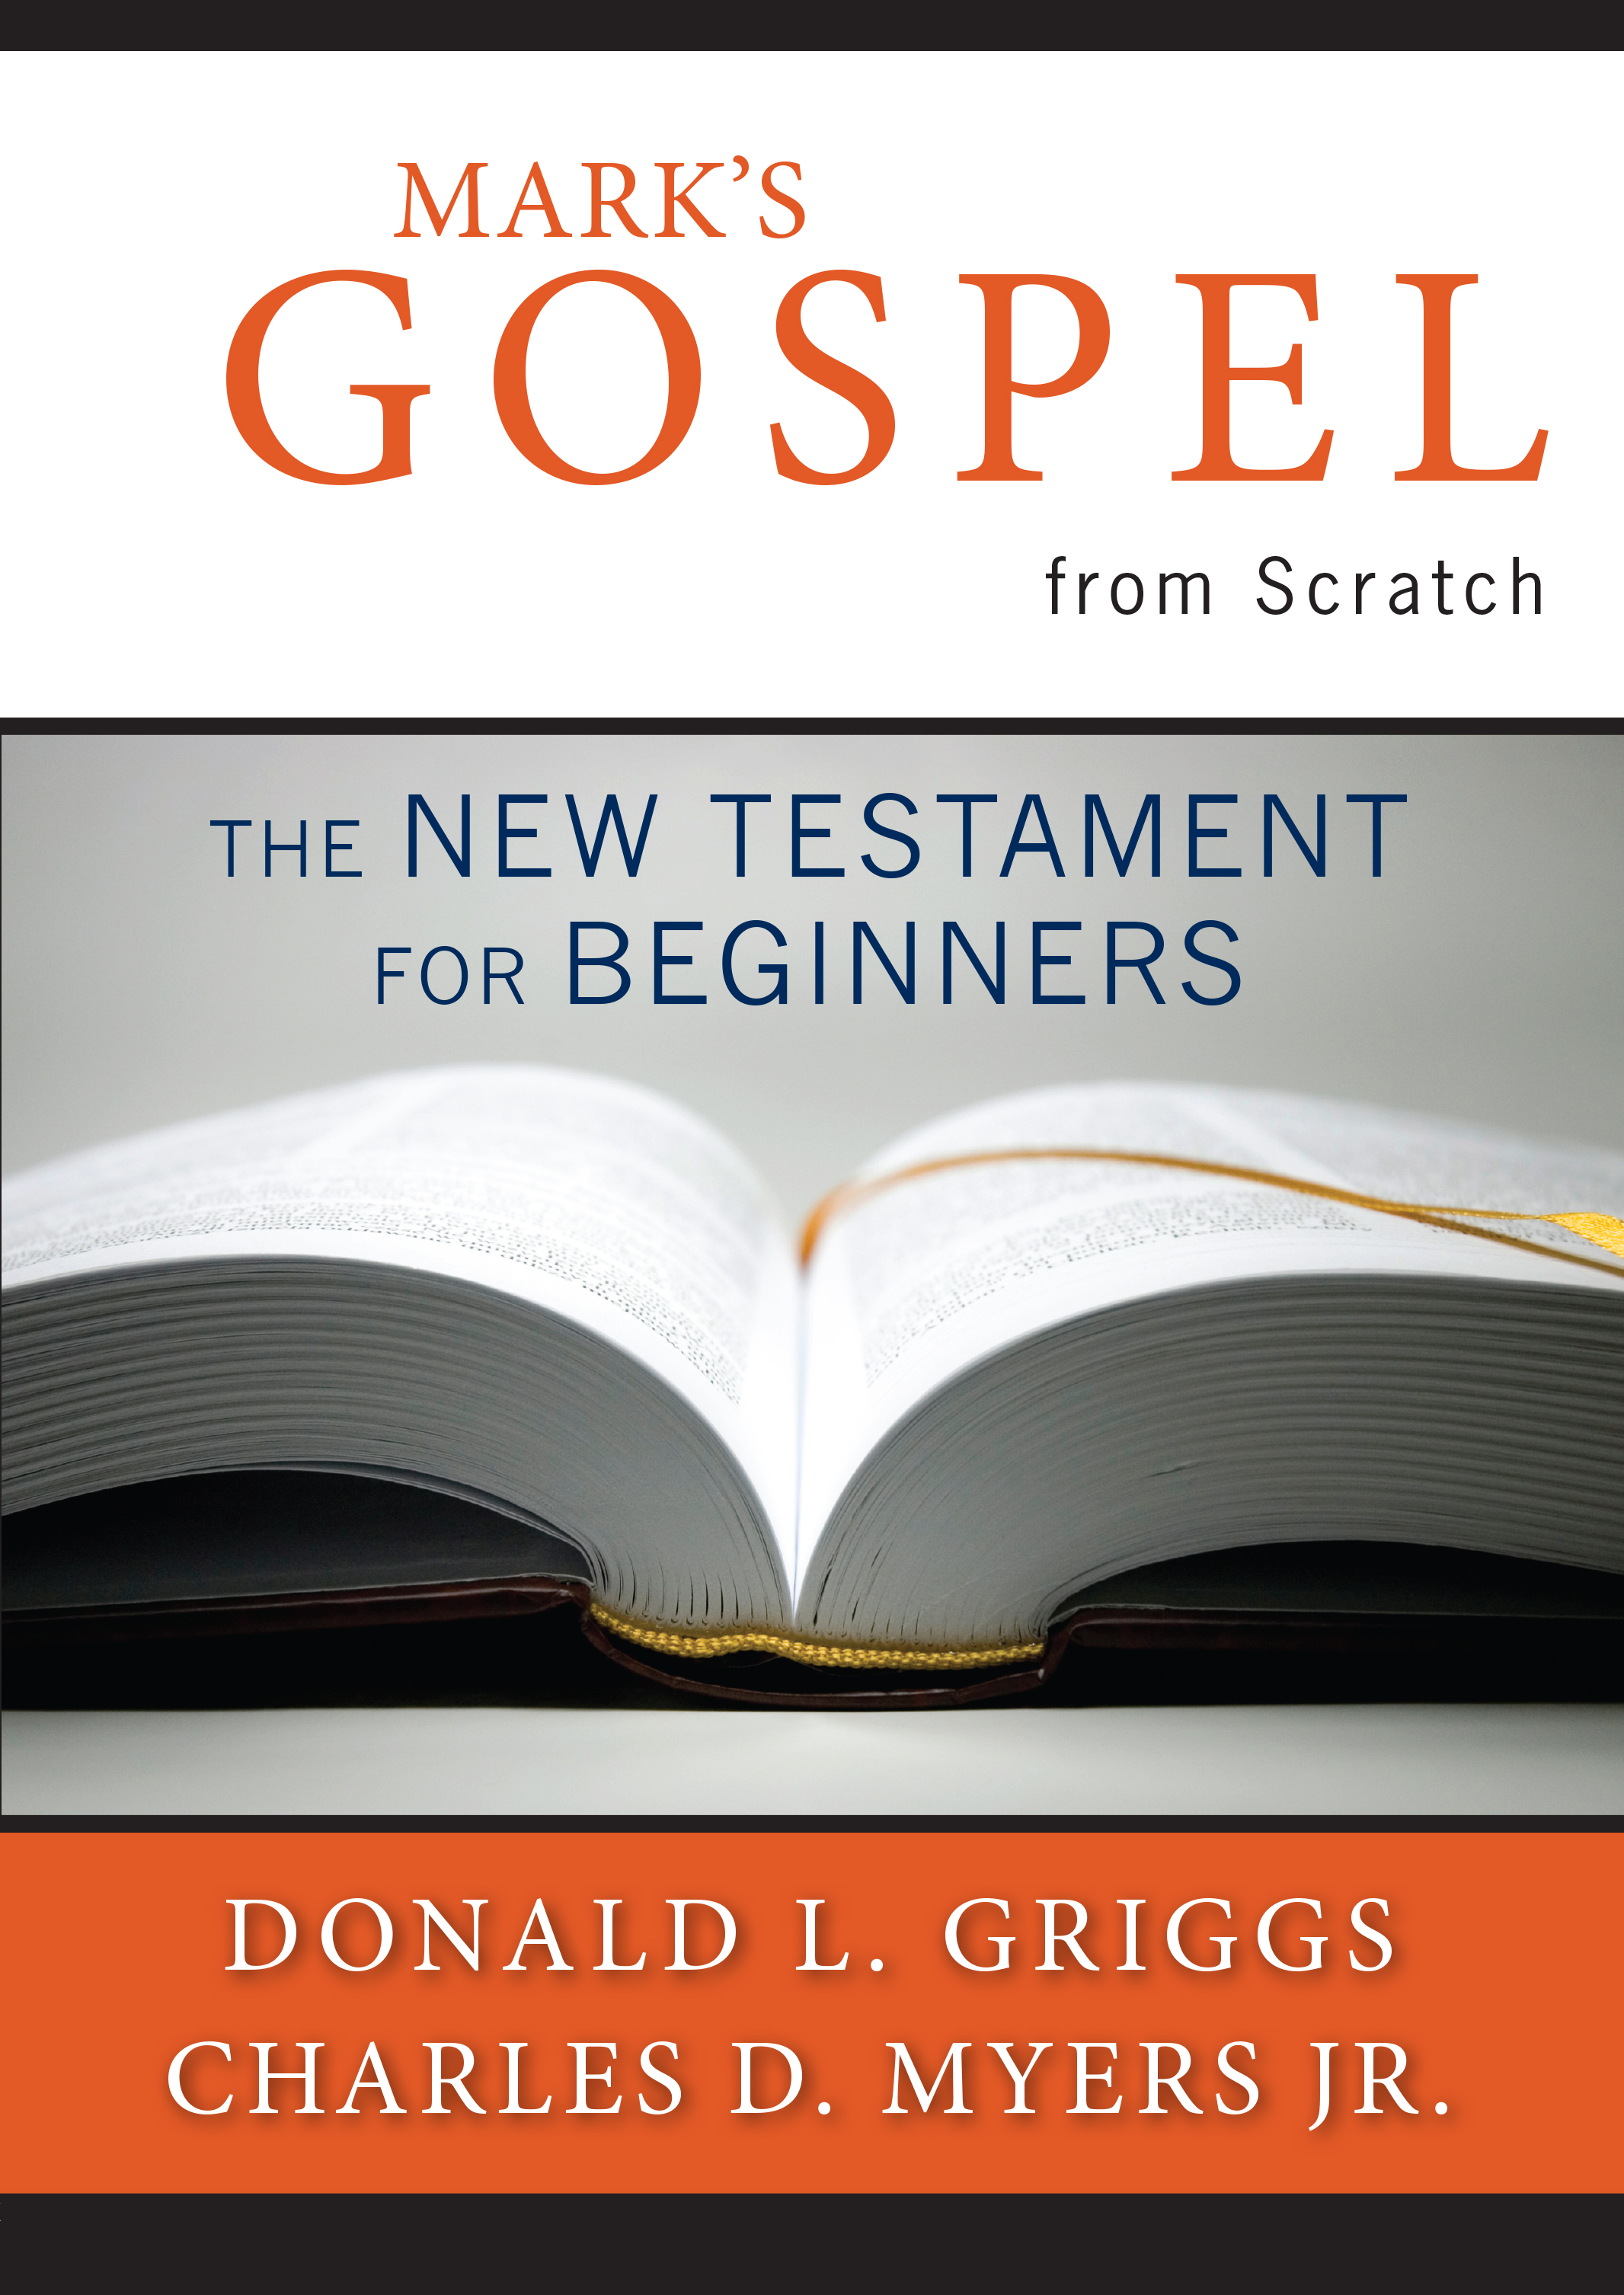 Mark's Gospel from Scratch